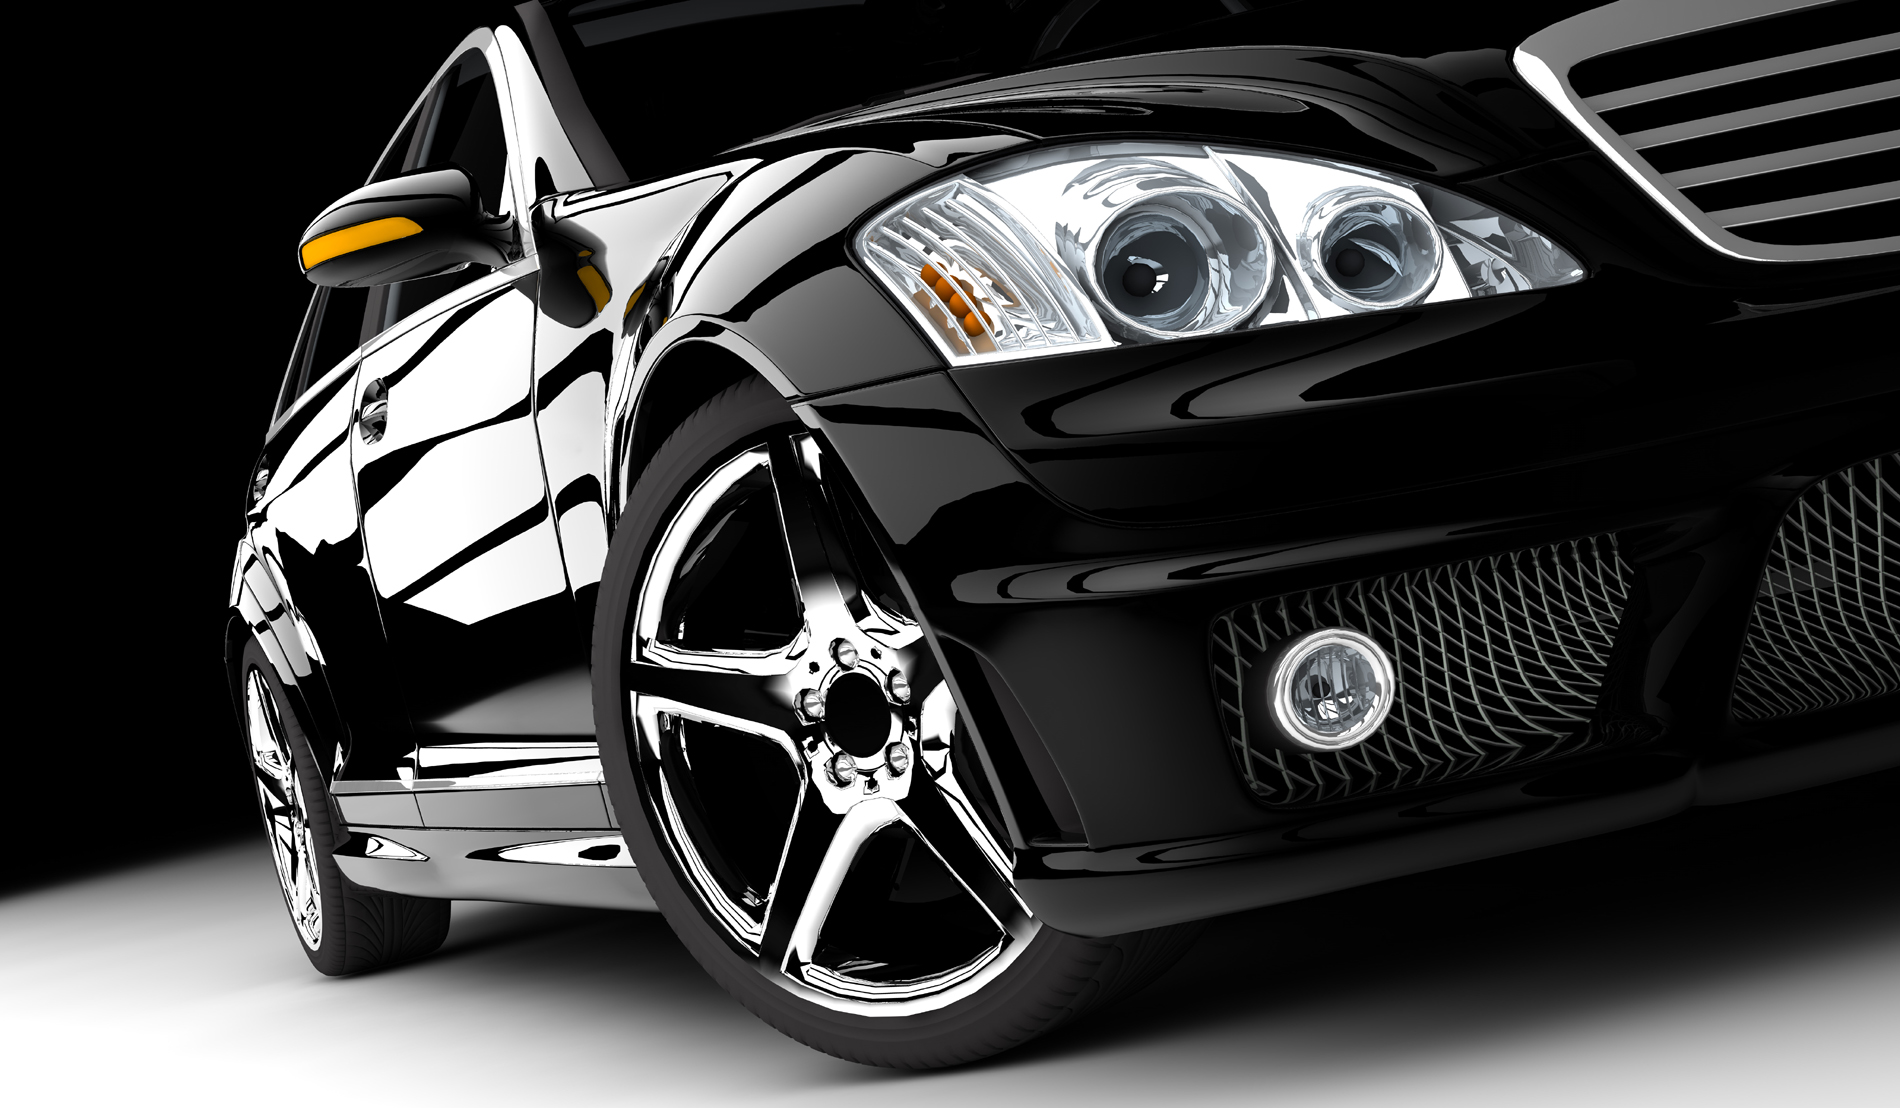 Black premium car front 52800 - Automotive Wallpapers - Traffic